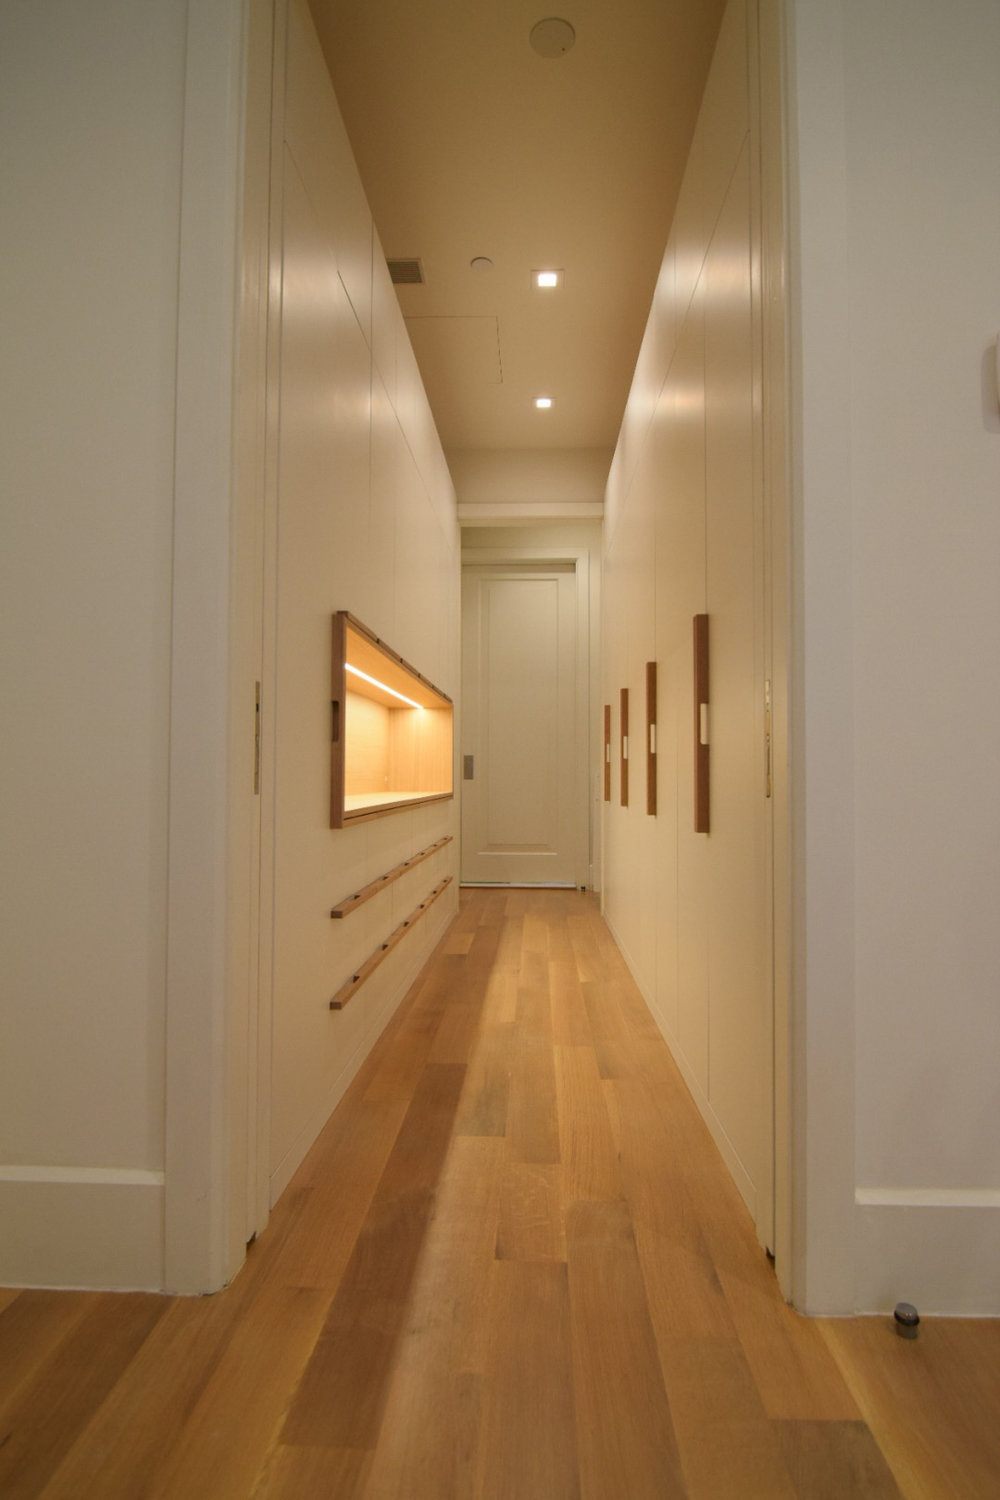 custom-walk-in-closet-with-drawers-and-open-accent-cabinet-white-lacquer-finish-maple-interior-white-oak-handles.jpg